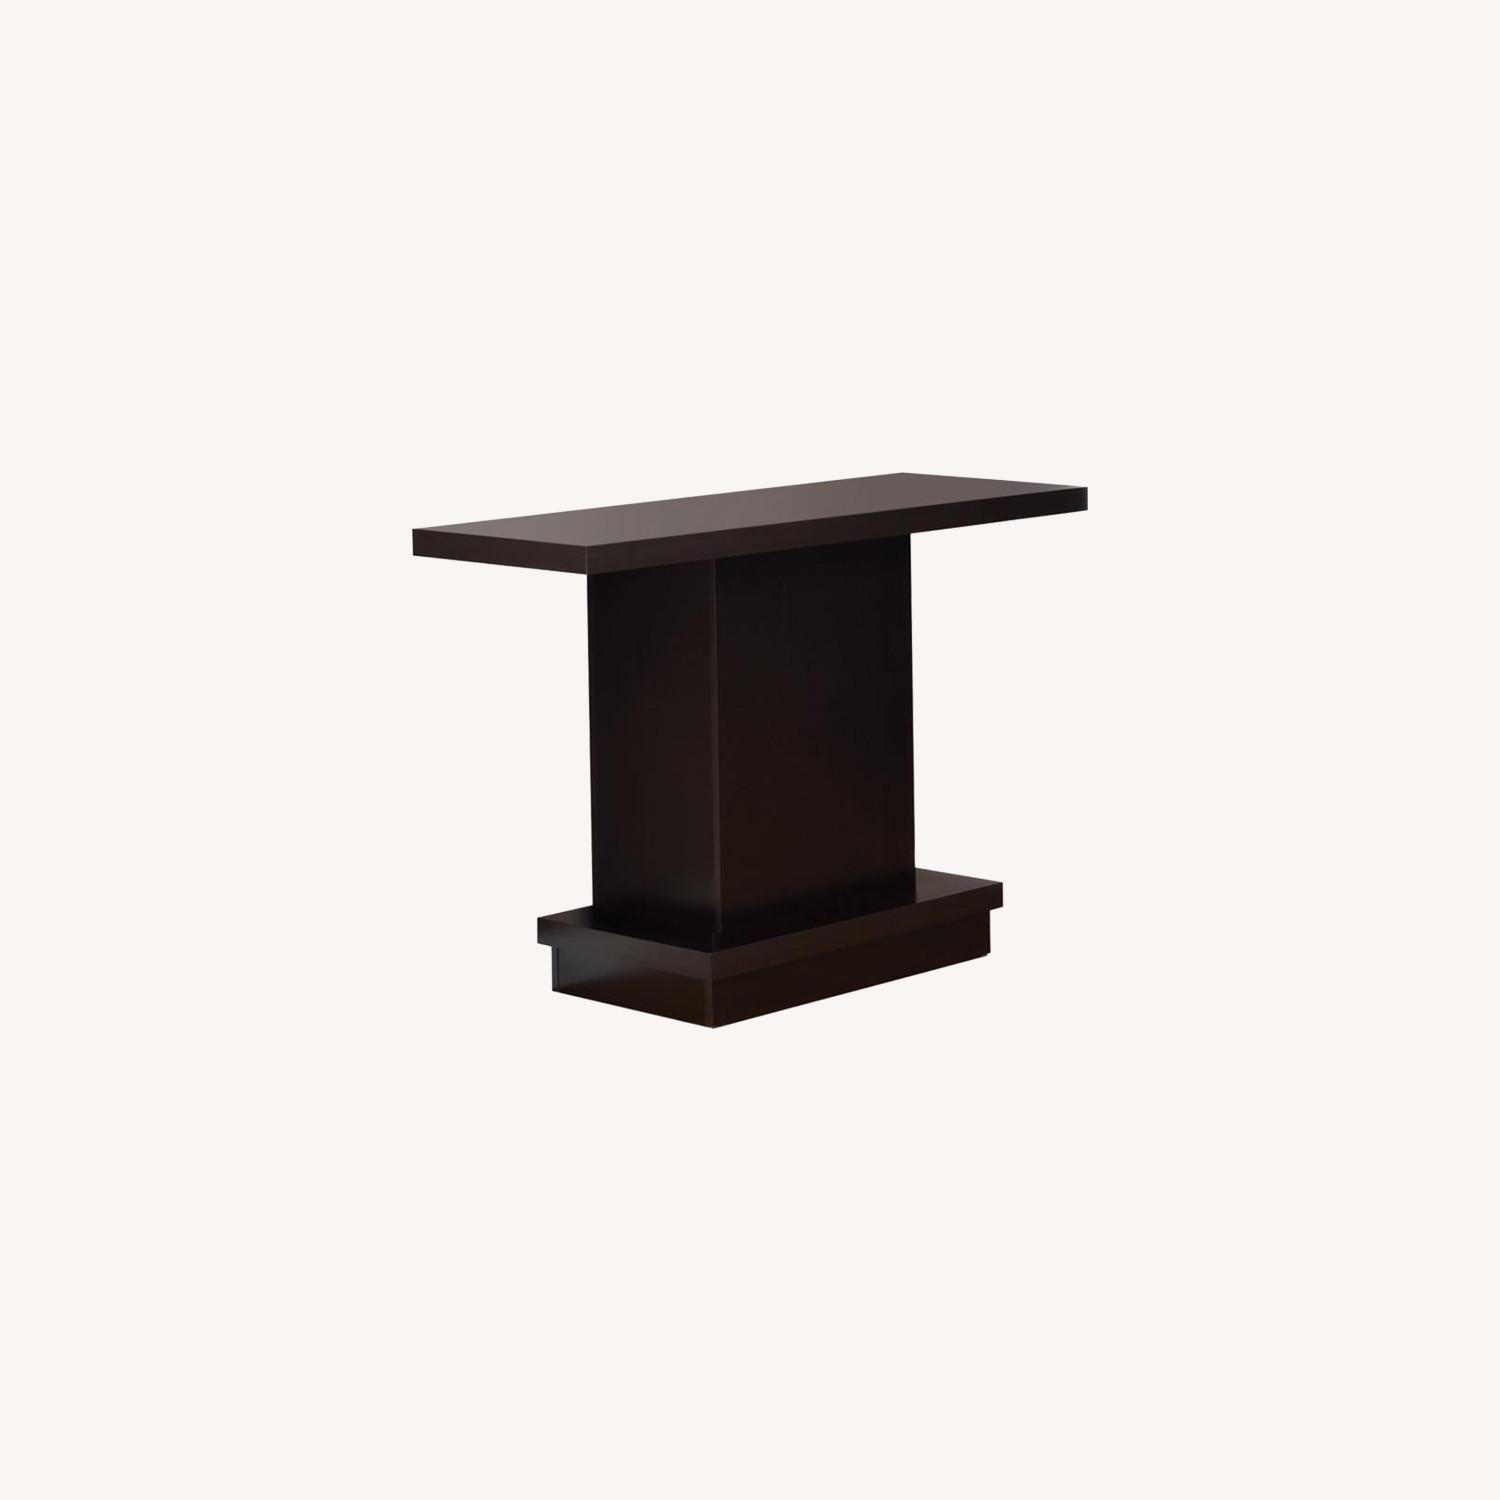 Pedestal-Style Sofa Table In Ric Cappuccino Finish - image-3